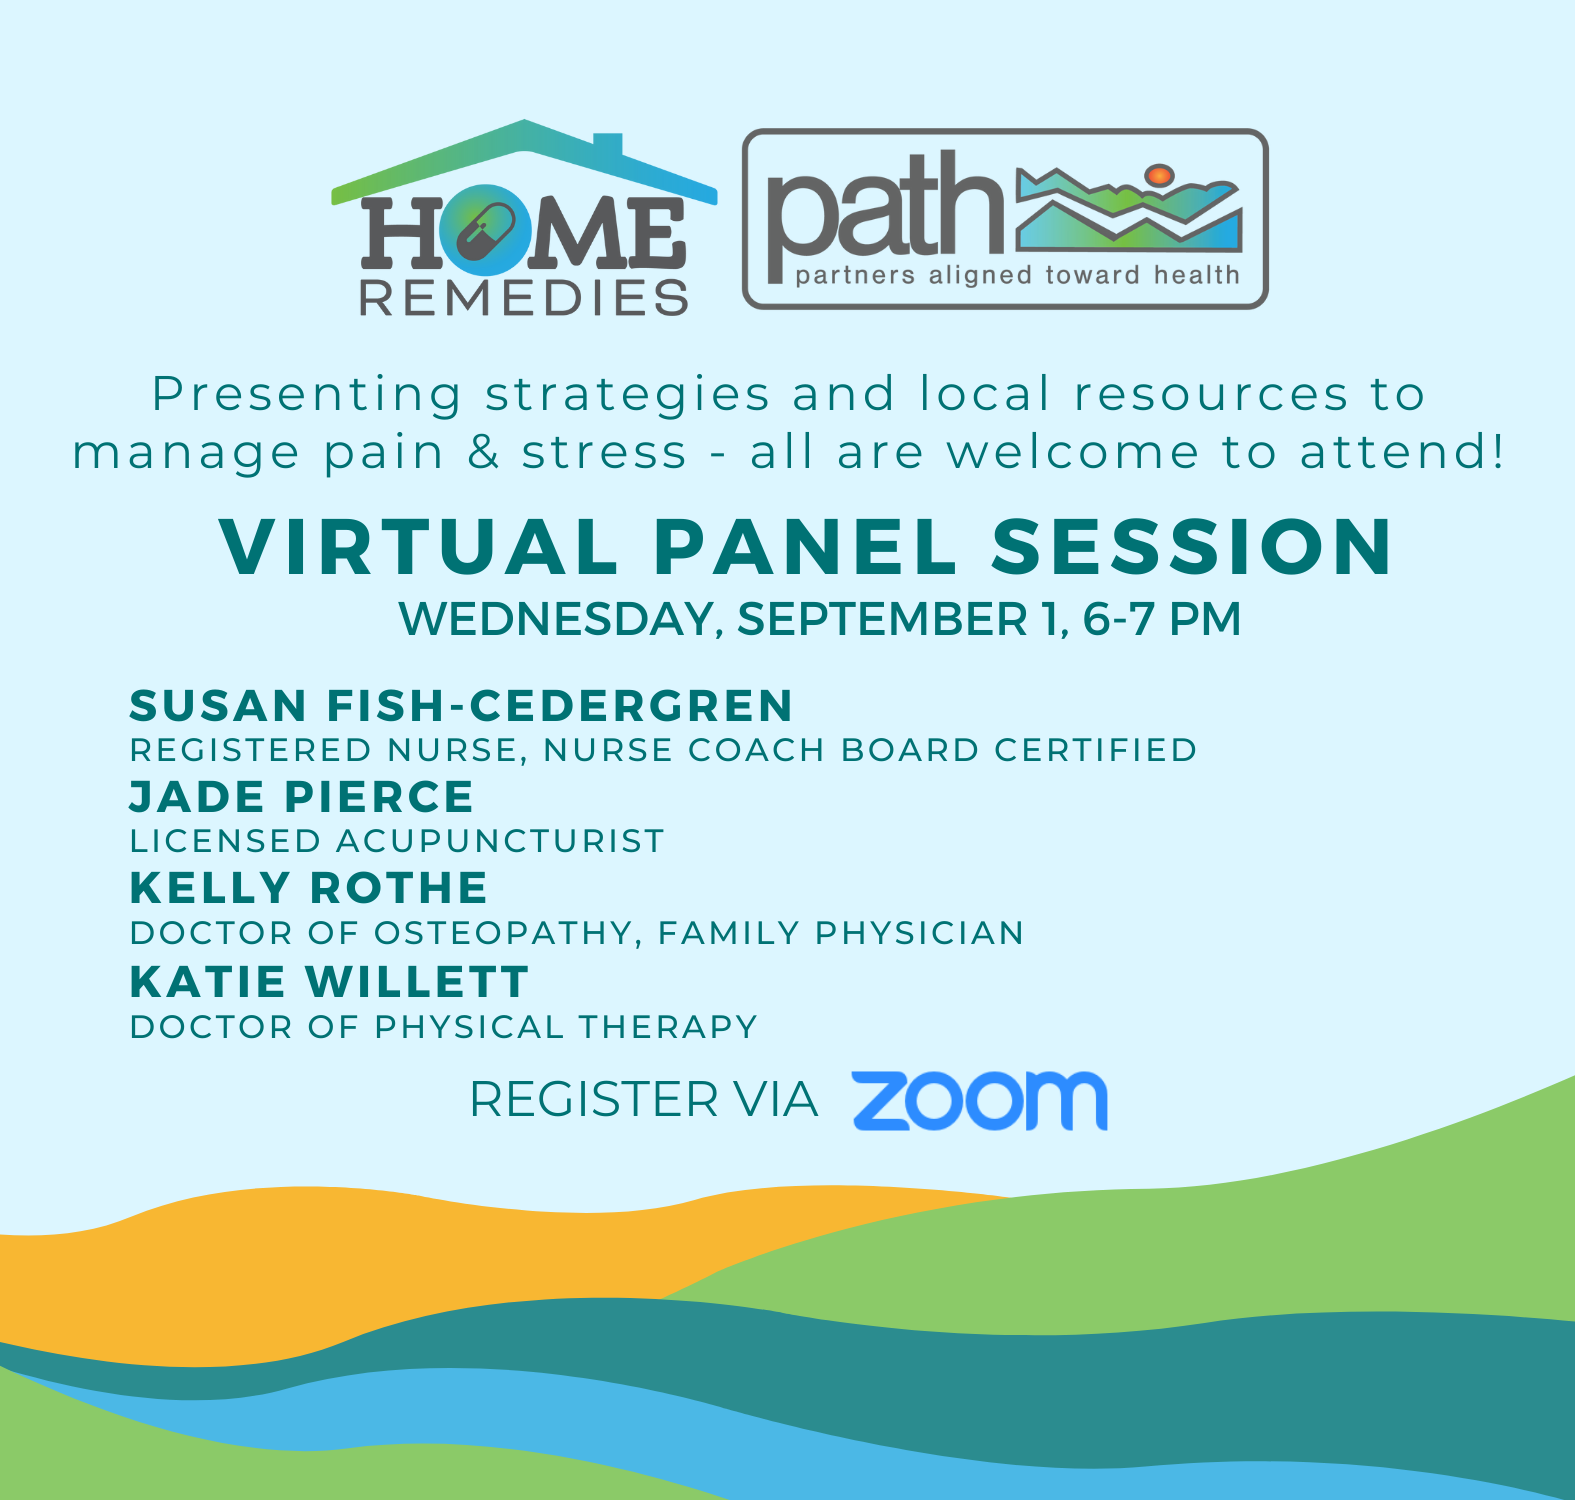 Blue background with colored mountains along the bottom border, in yellow, green and blues. Flyer details a Virtual Panel Discussion held on Sept 1.